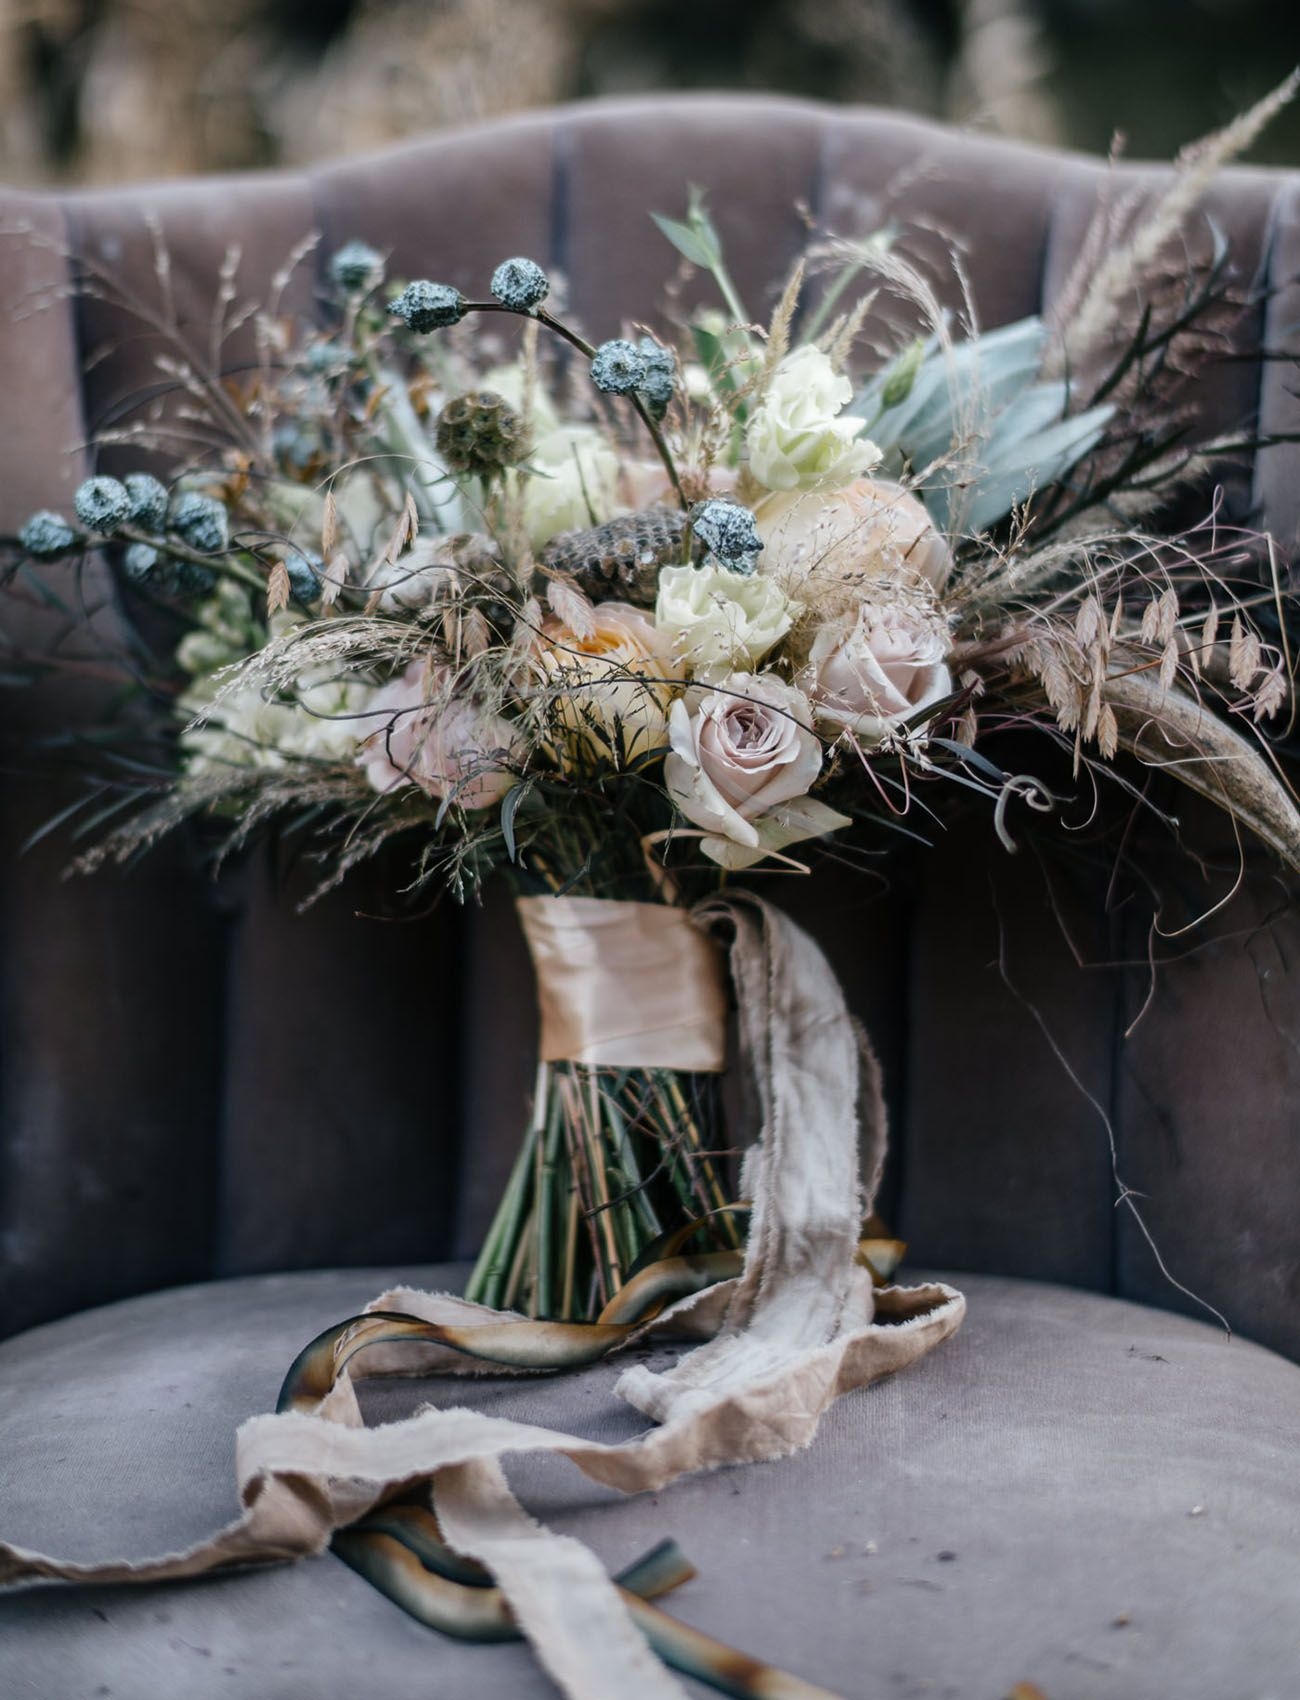 autumn stick season sorcery inspired shoot in vermont flower bouquets winter weddings and peach. Black Bedroom Furniture Sets. Home Design Ideas